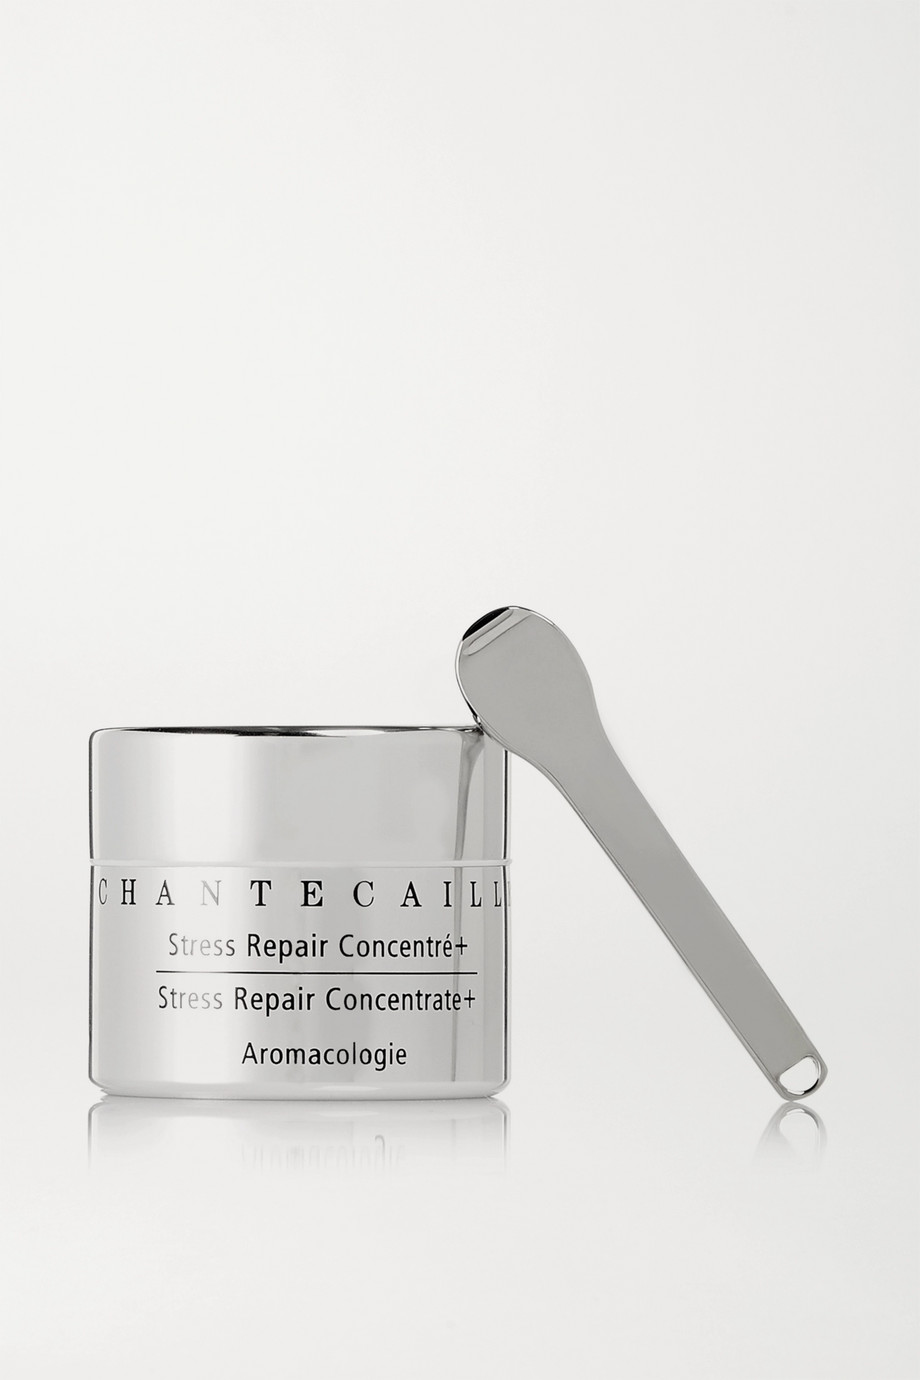 CHANTECAILLE Stress Repair Concentrate+, 15ml